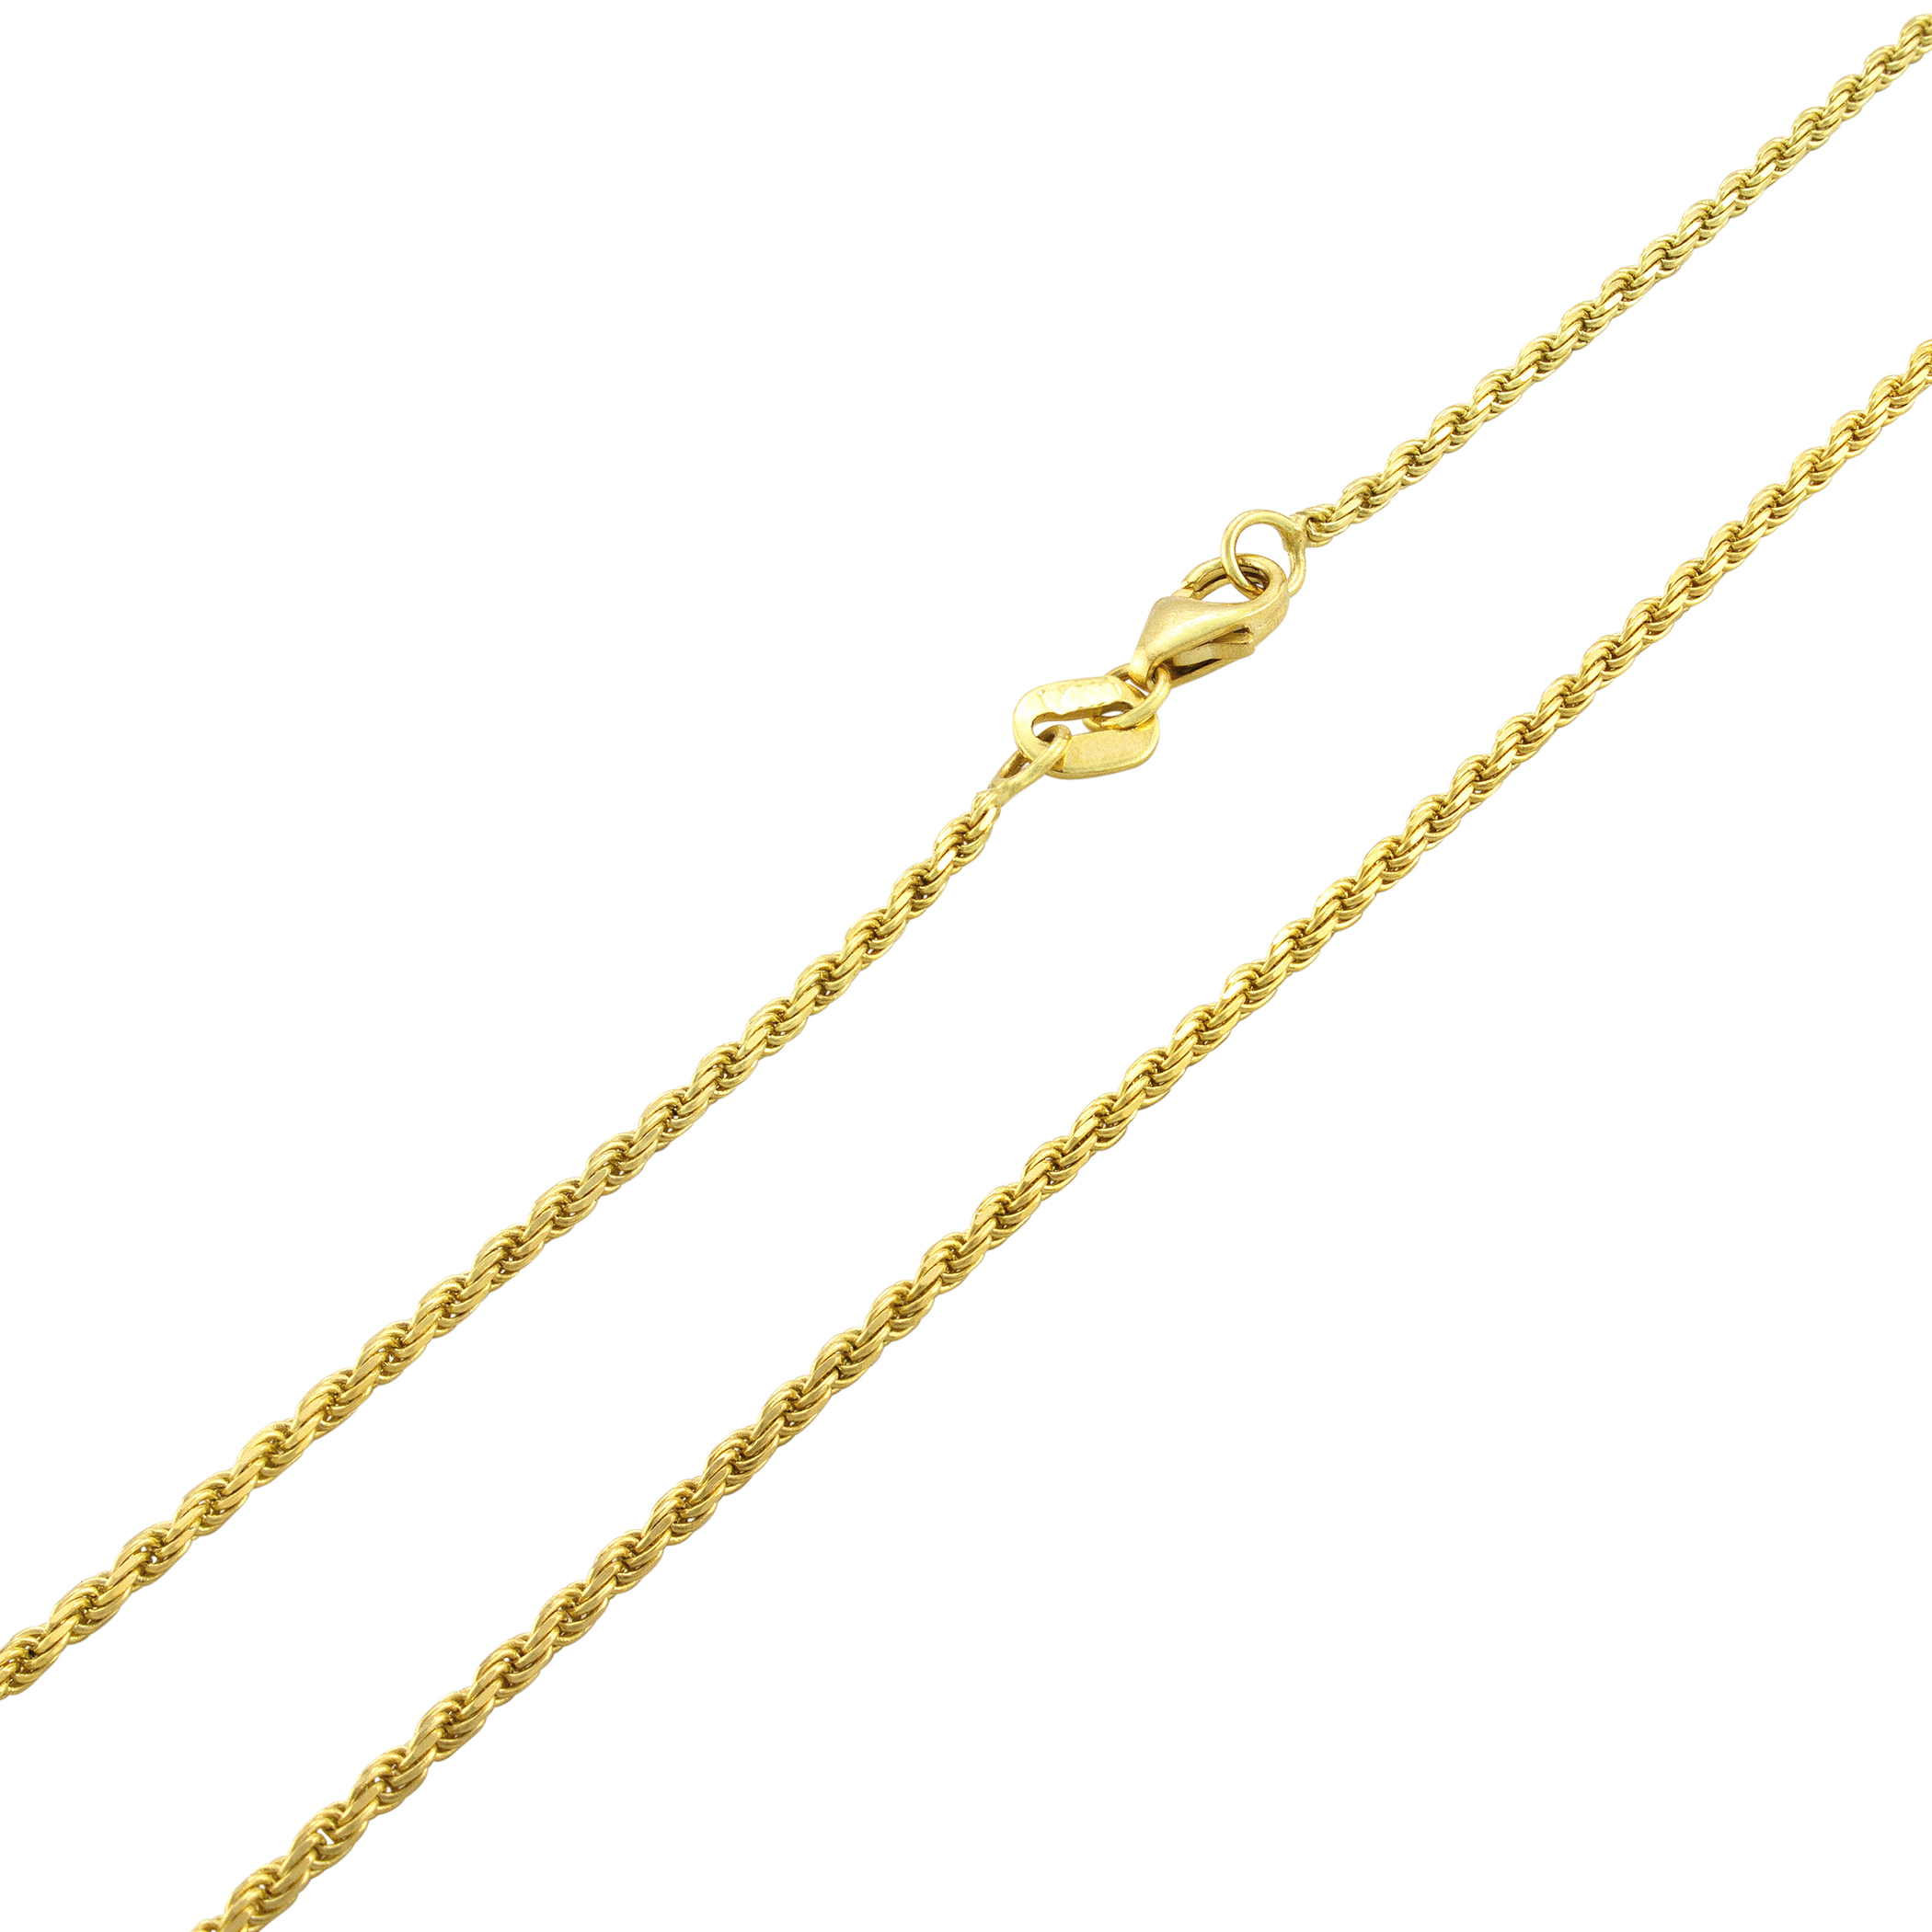 14K-Yellow-Gold-Solid-1-8mm-Diamond-Cut-Rope-Link-Chain-Pendant-Necklace-16-034-30-034 thumbnail 13